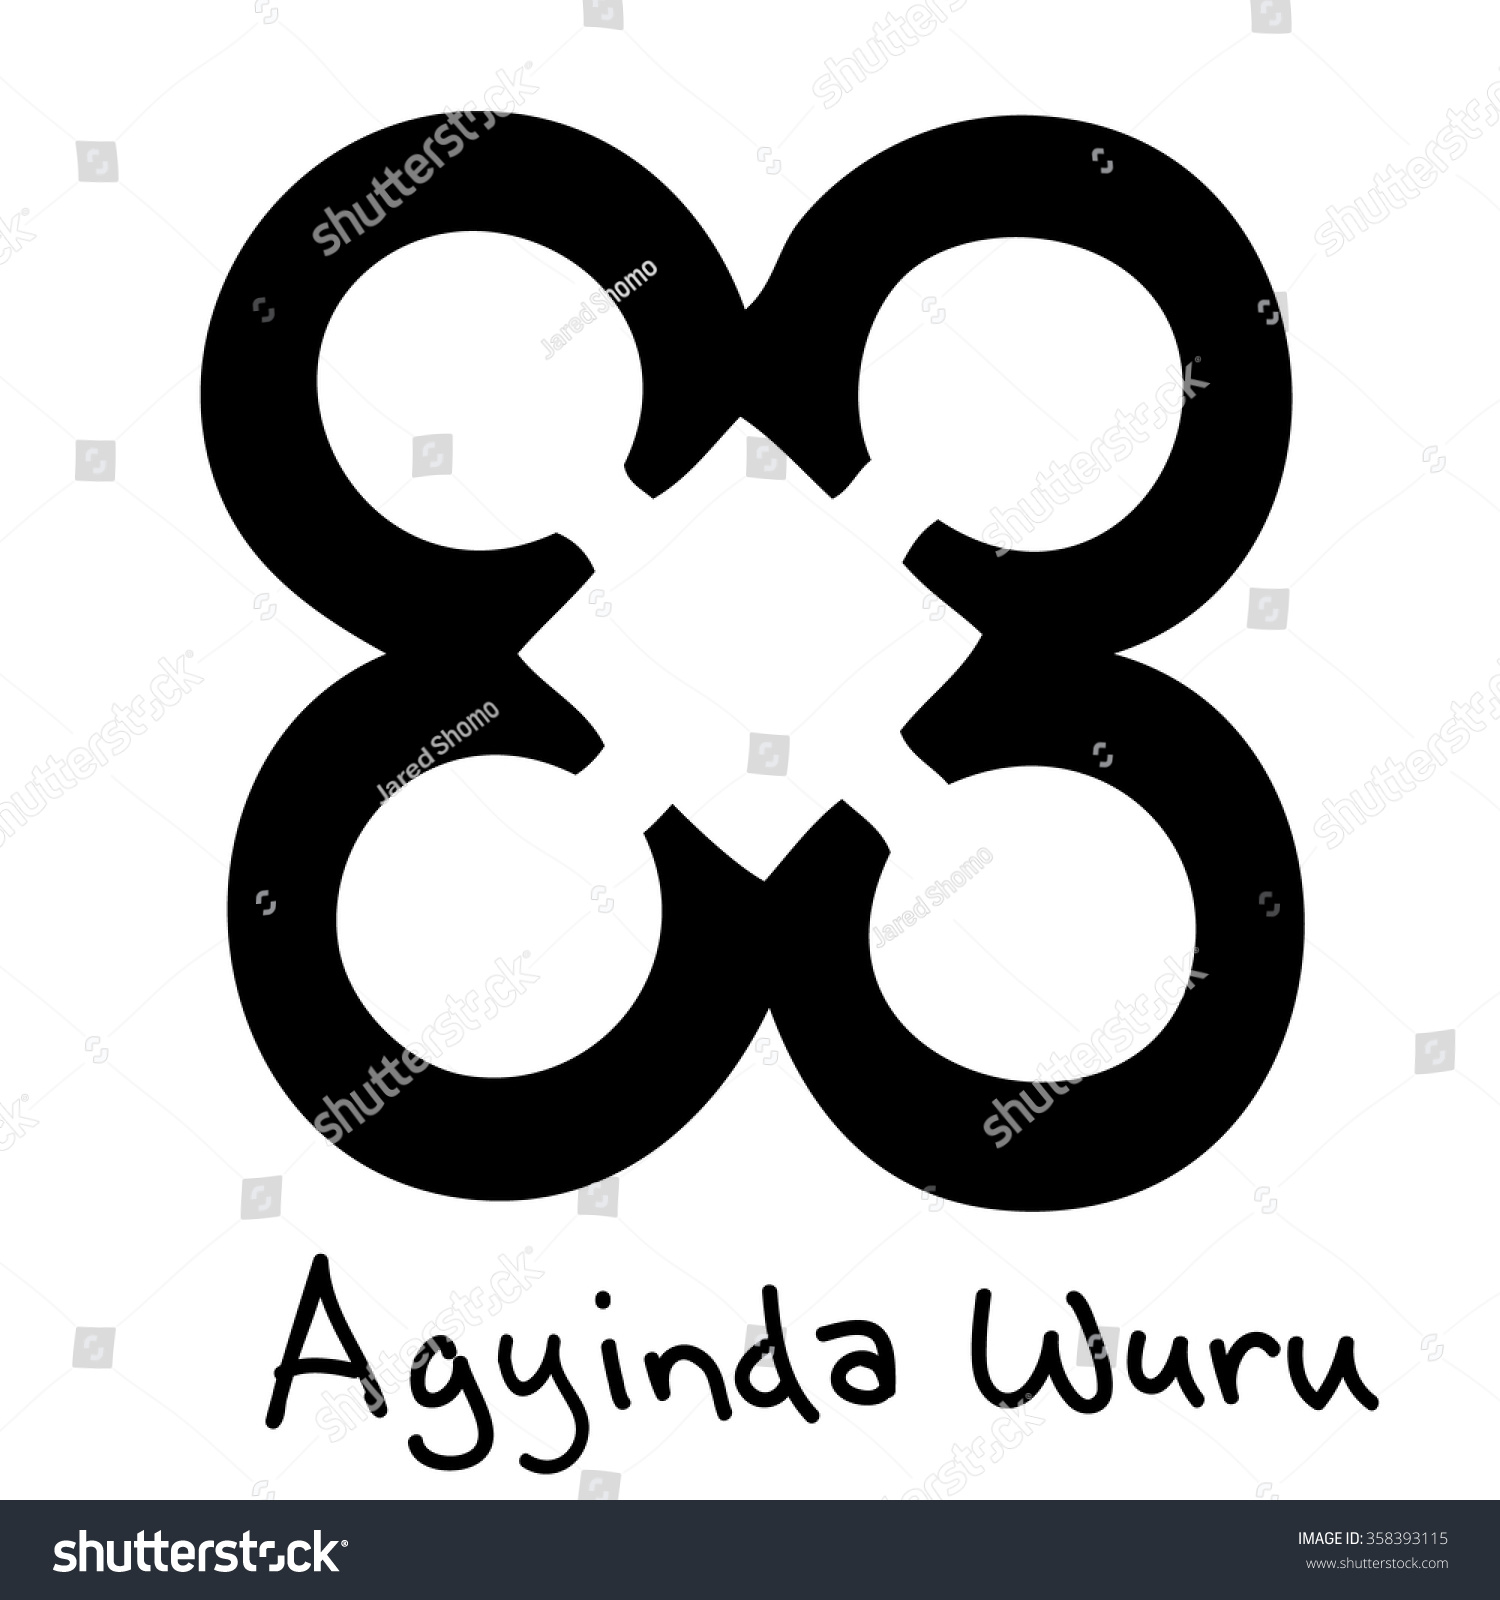 African adinkra symbol agyinda wuru faithfulness stock vector african adinkra symbol agyinda wuru faithfulness loyalty dutiful biocorpaavc Image collections